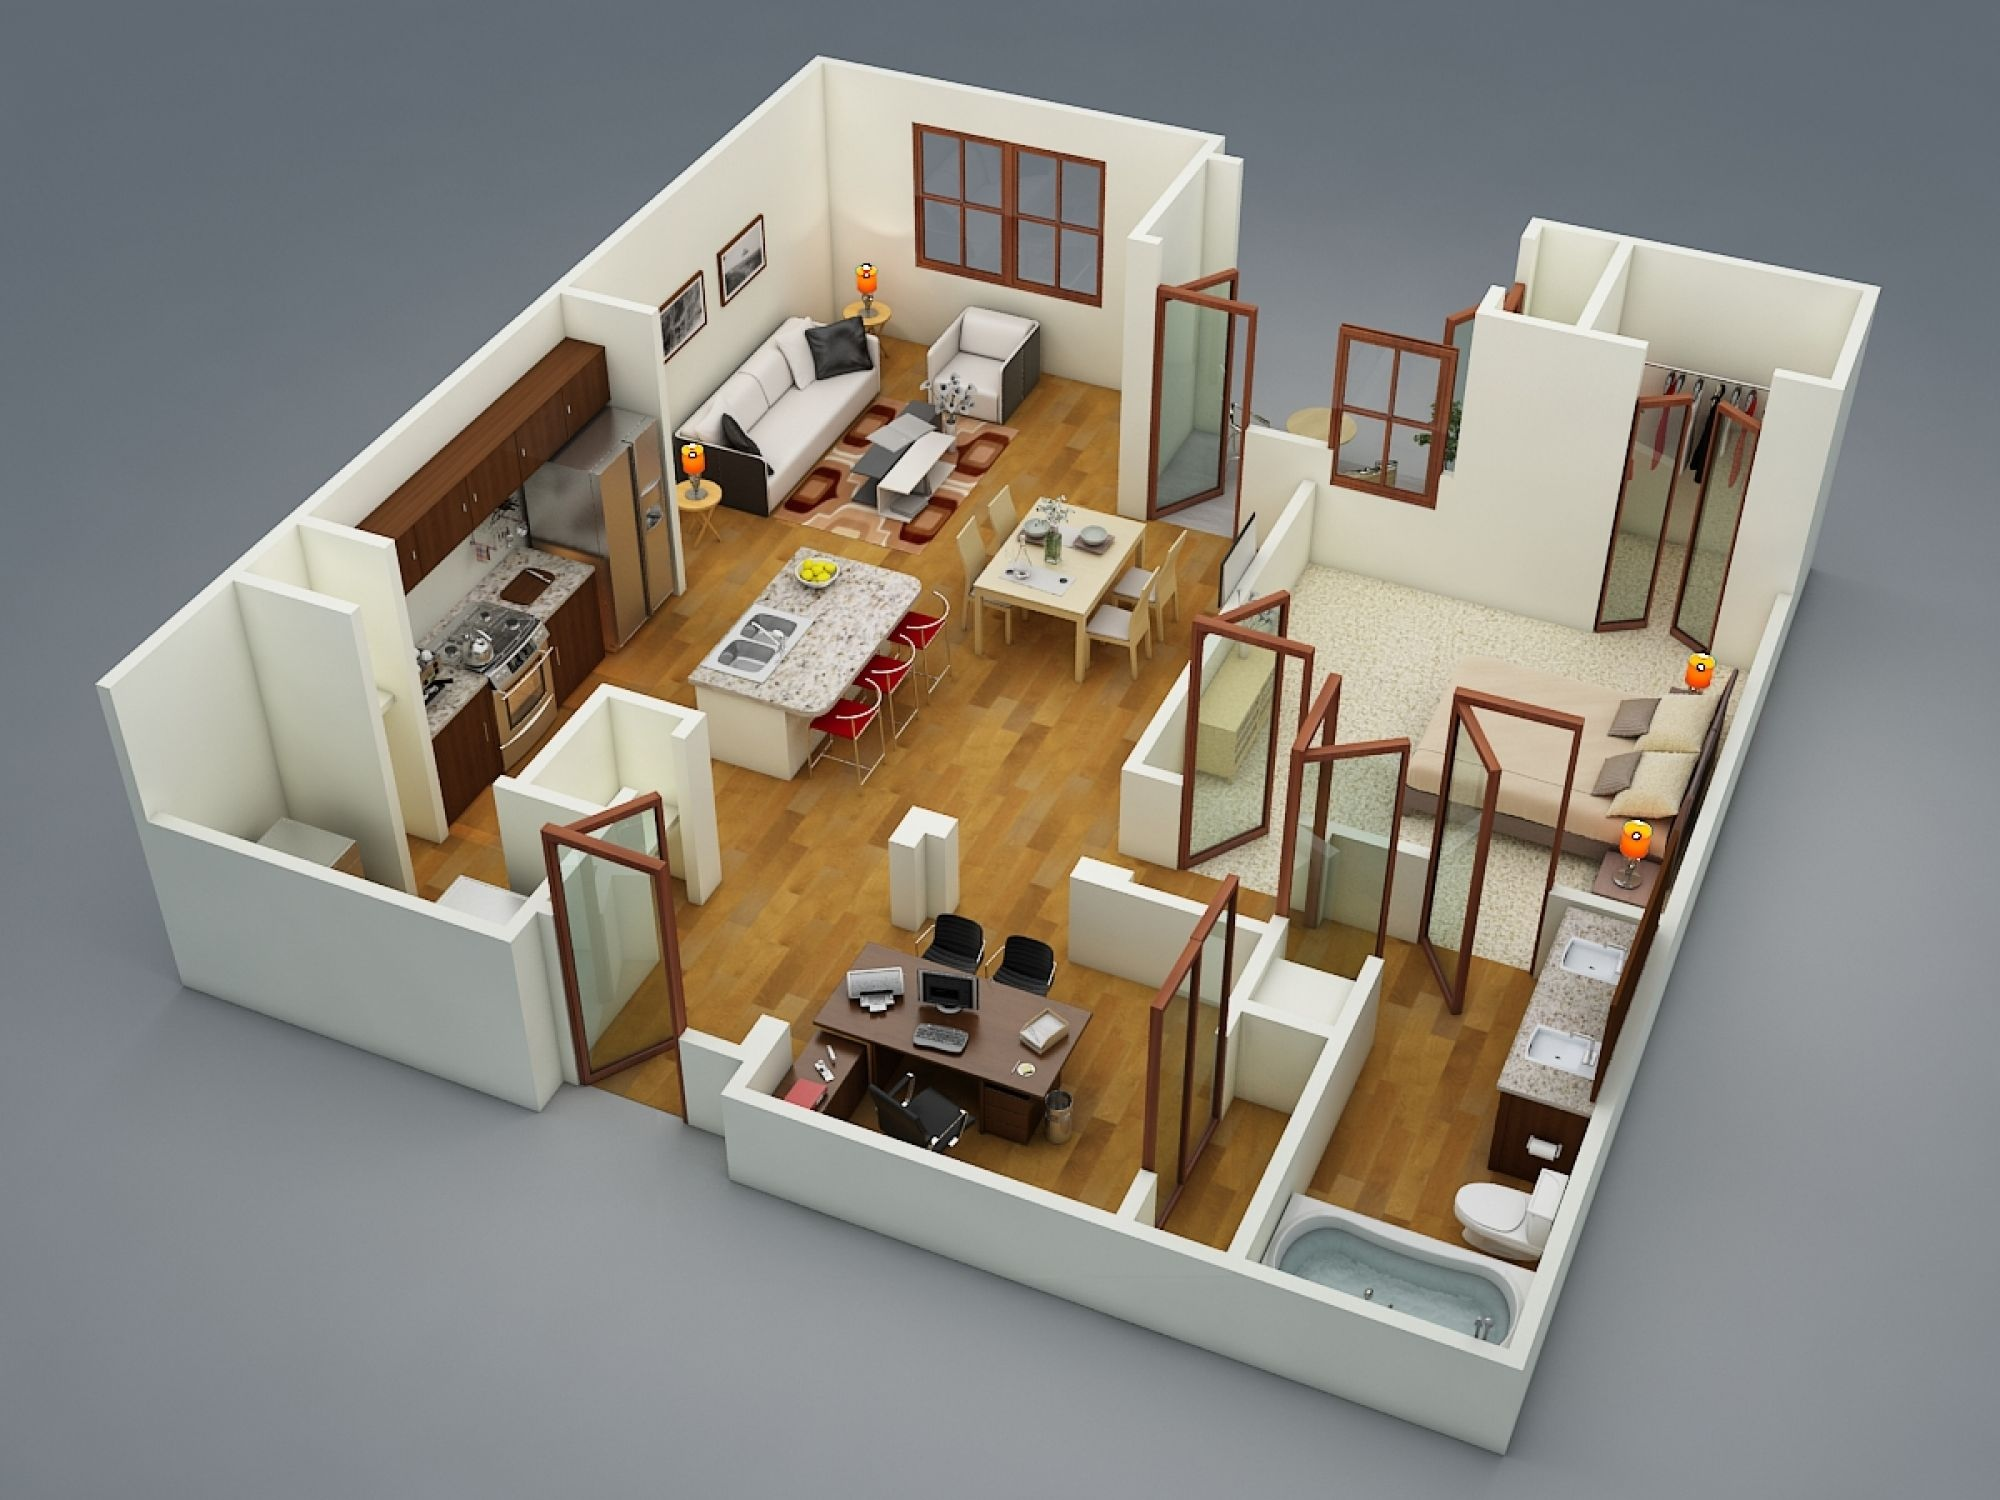 1 bedroom apartment house plans Apartment type house plans